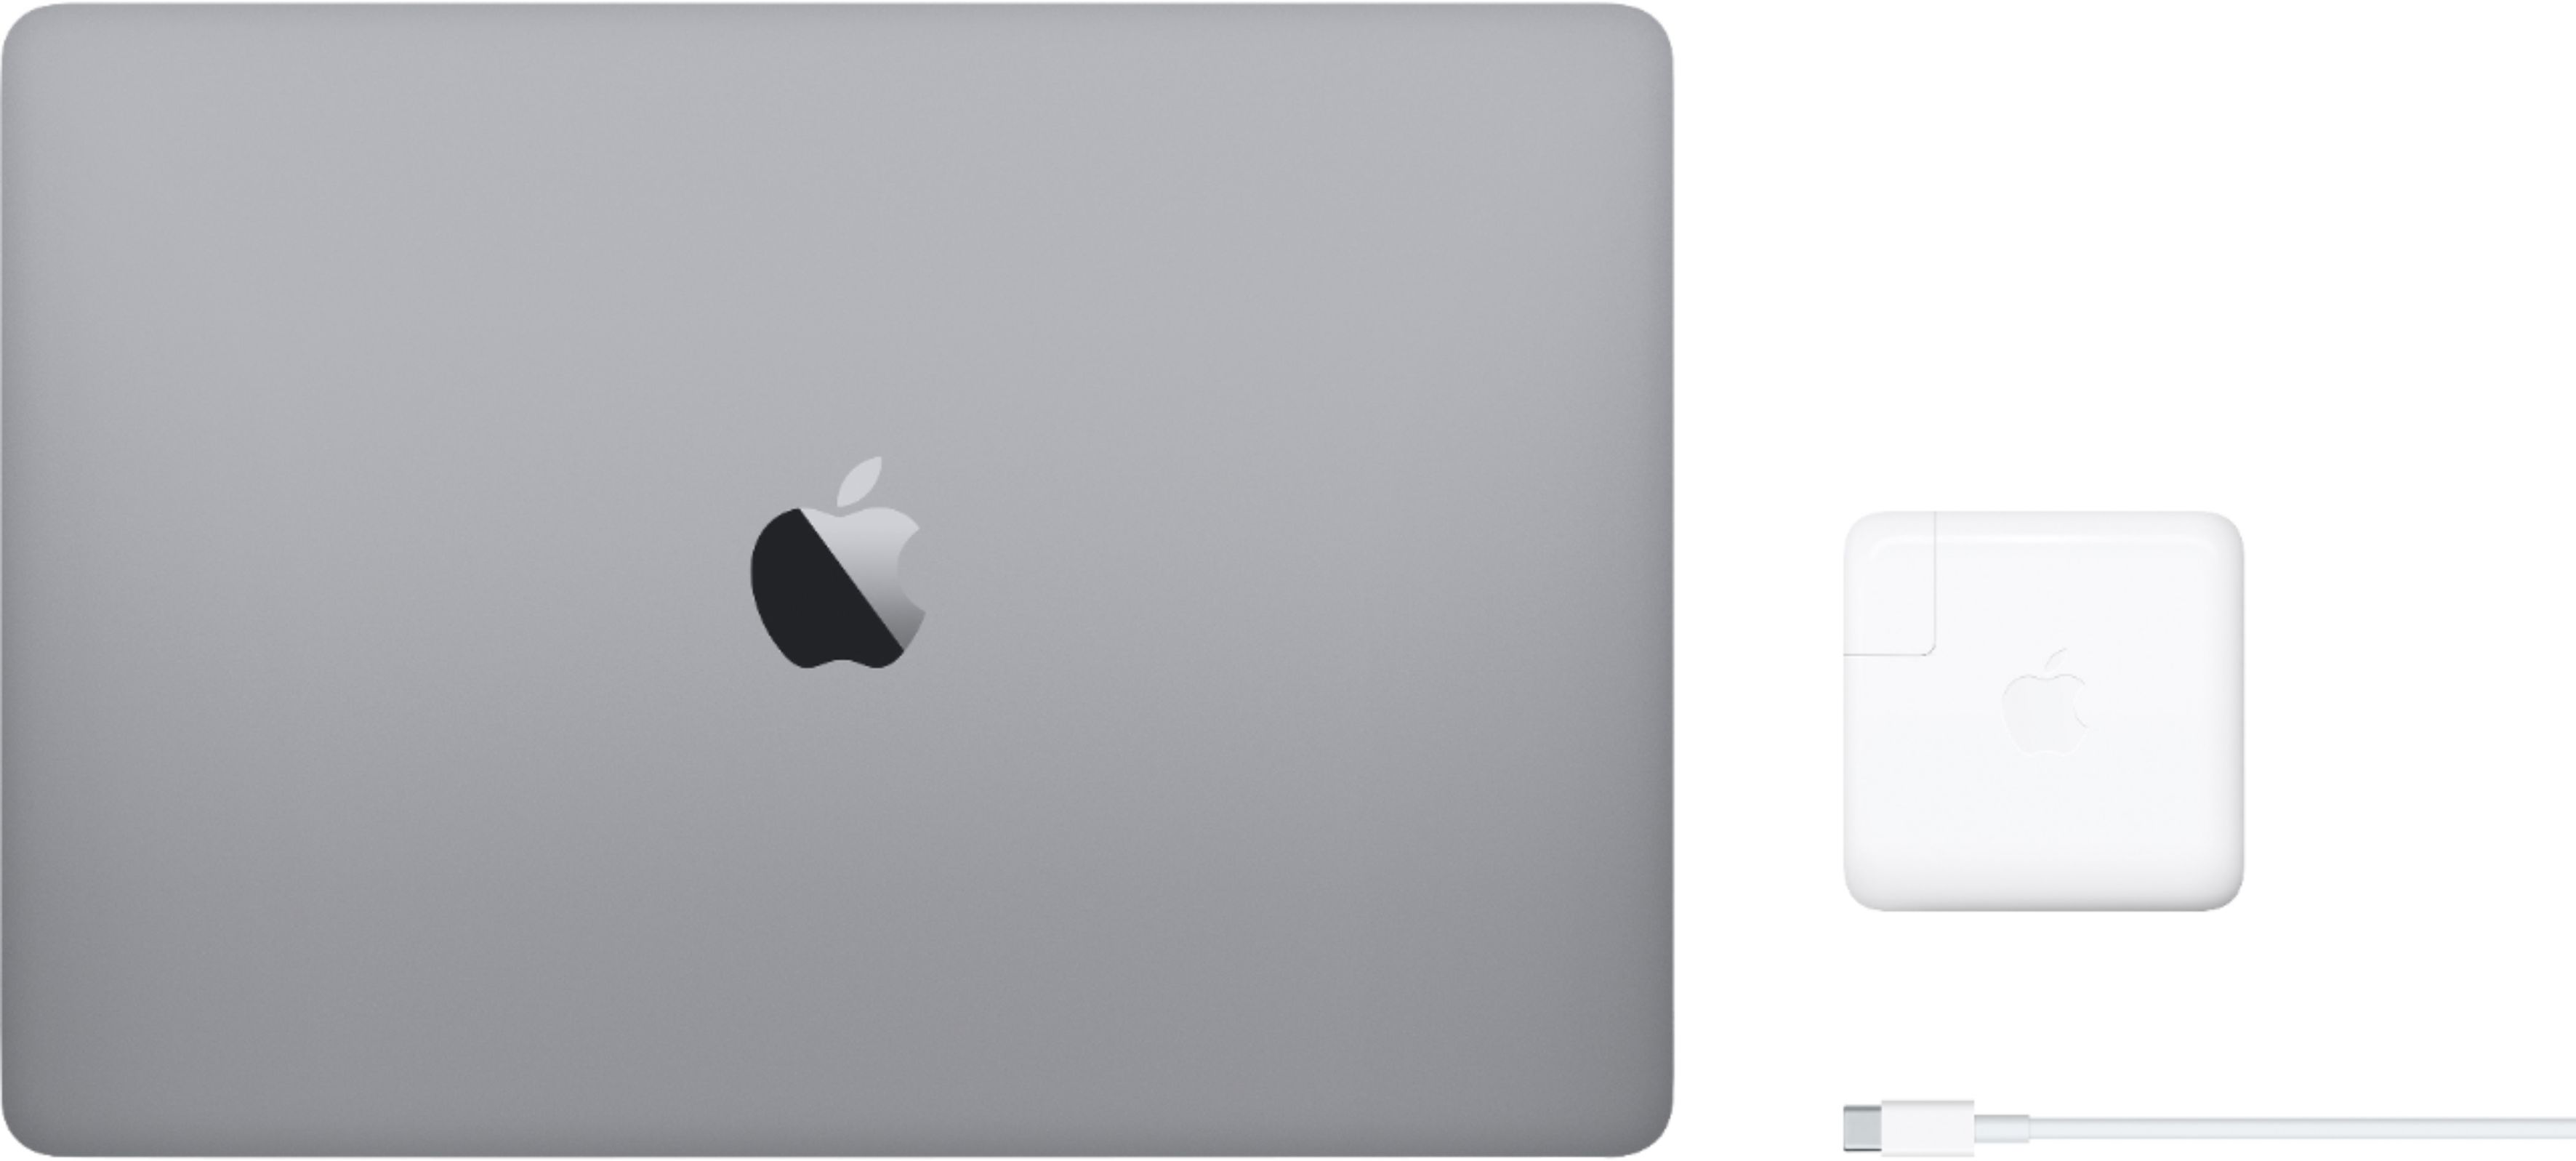 """Alt View Zoom 14. Apple - Geek Squad Certified Refurbished MacBook Pro - 13"""" Display with Touch Bar - Intel Core i5 - 8GB Memory - 128GB SSD - Space Gray."""